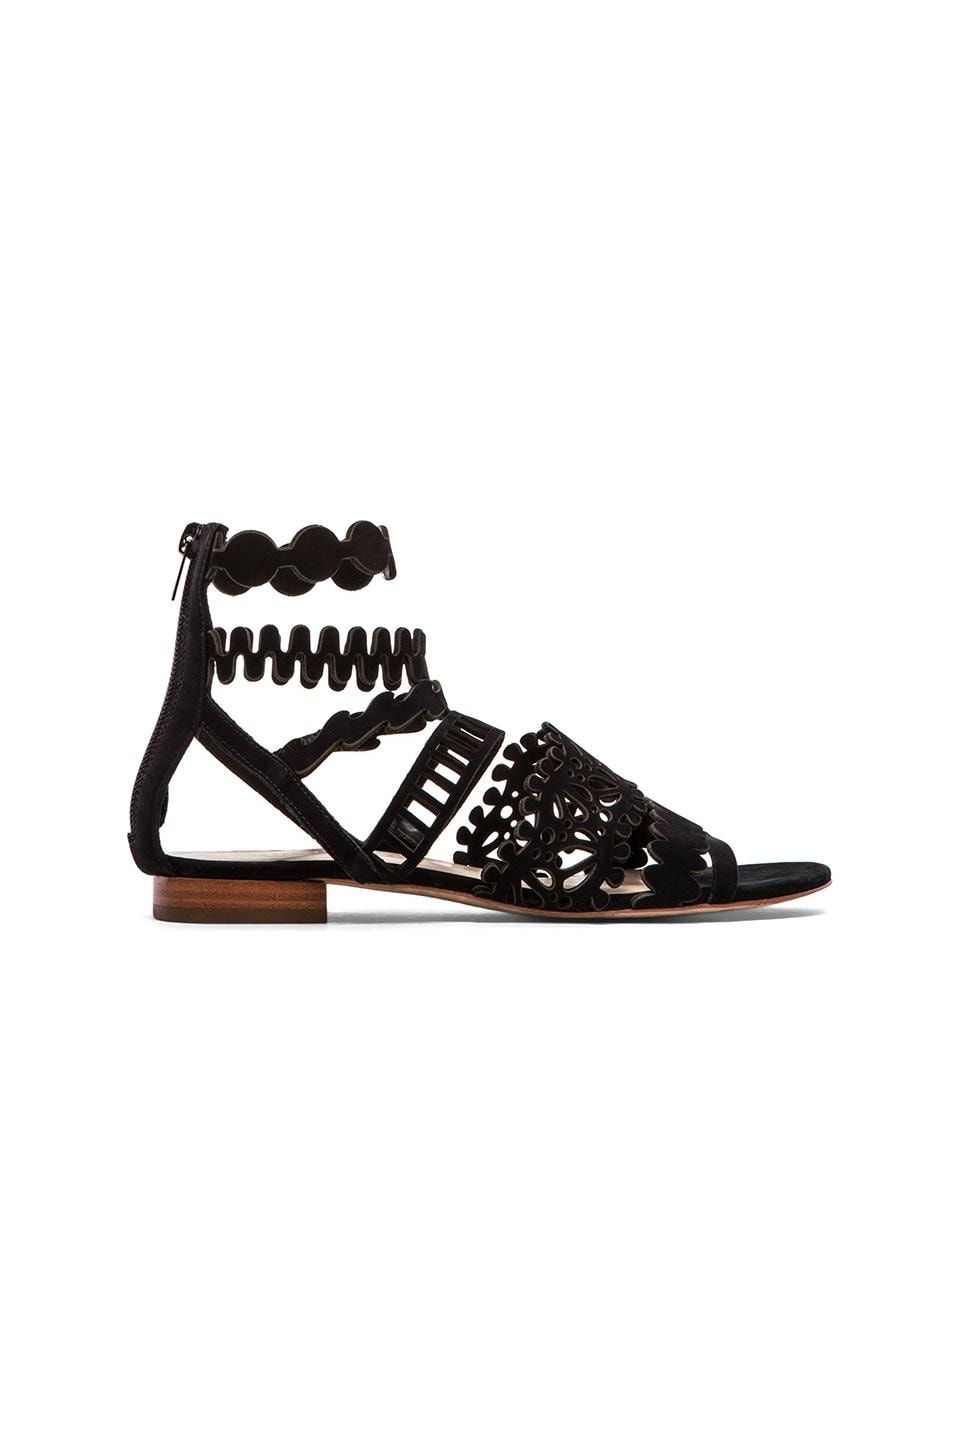 Loeffler Randall Dixie Sandal in Black